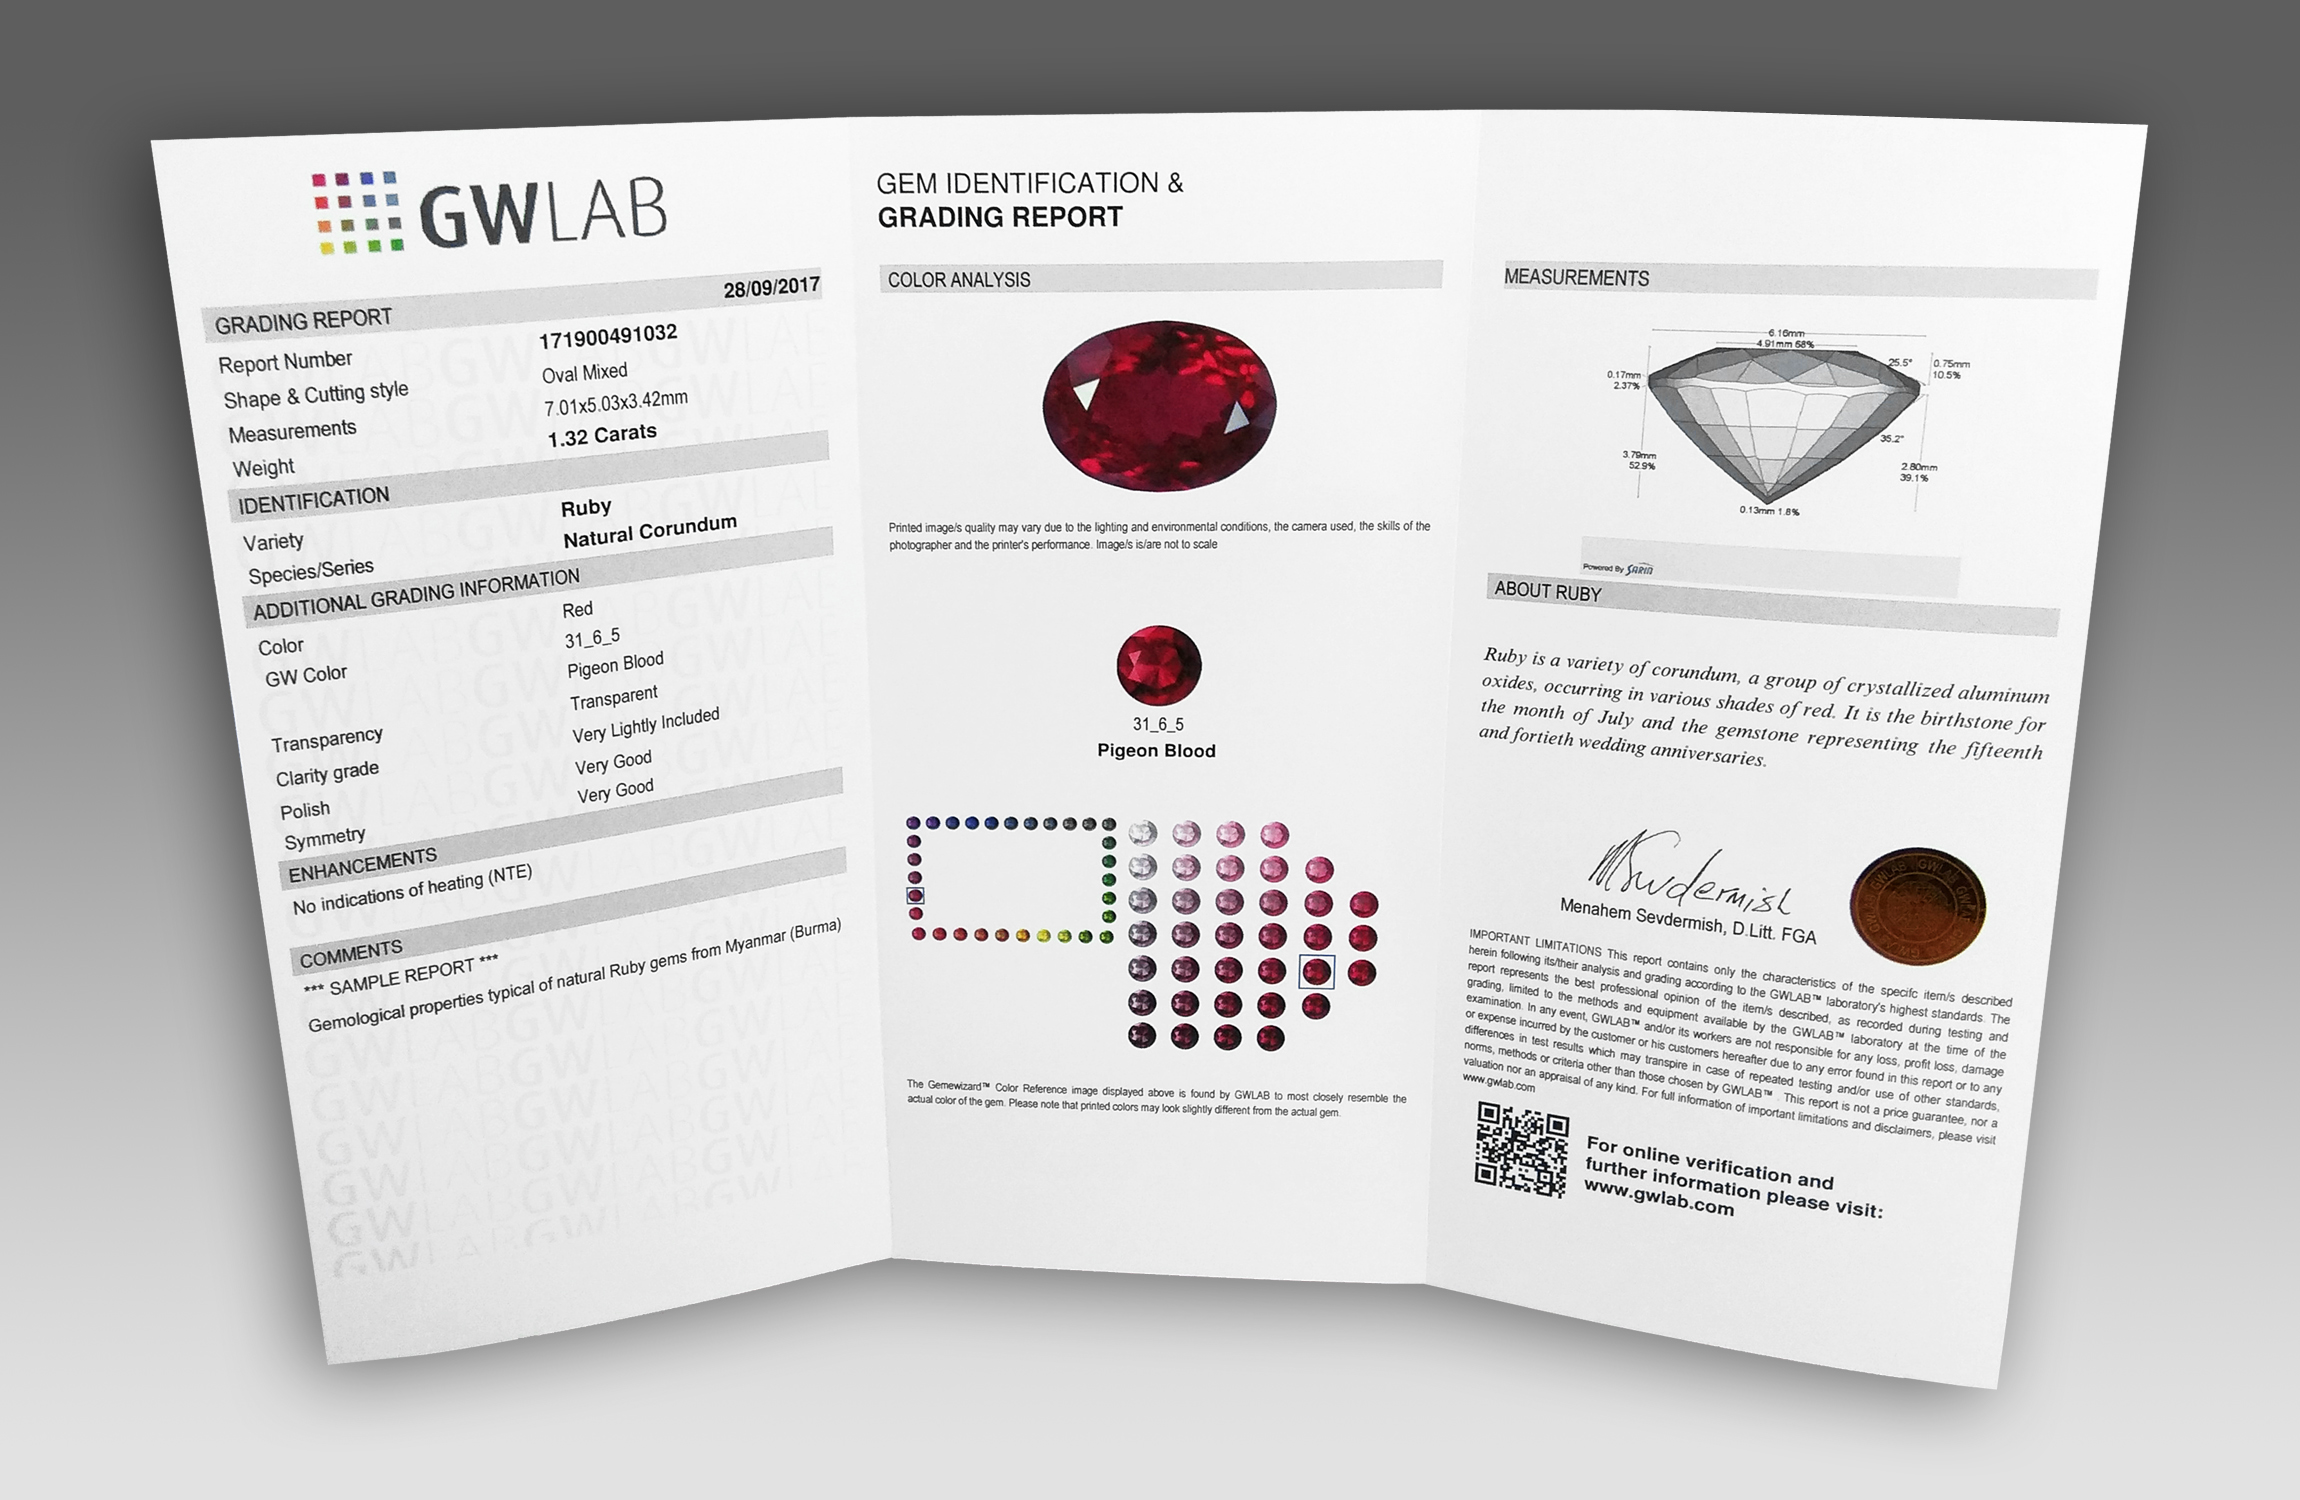 GWLAB Gem Identification And Grading Report - Inner Side